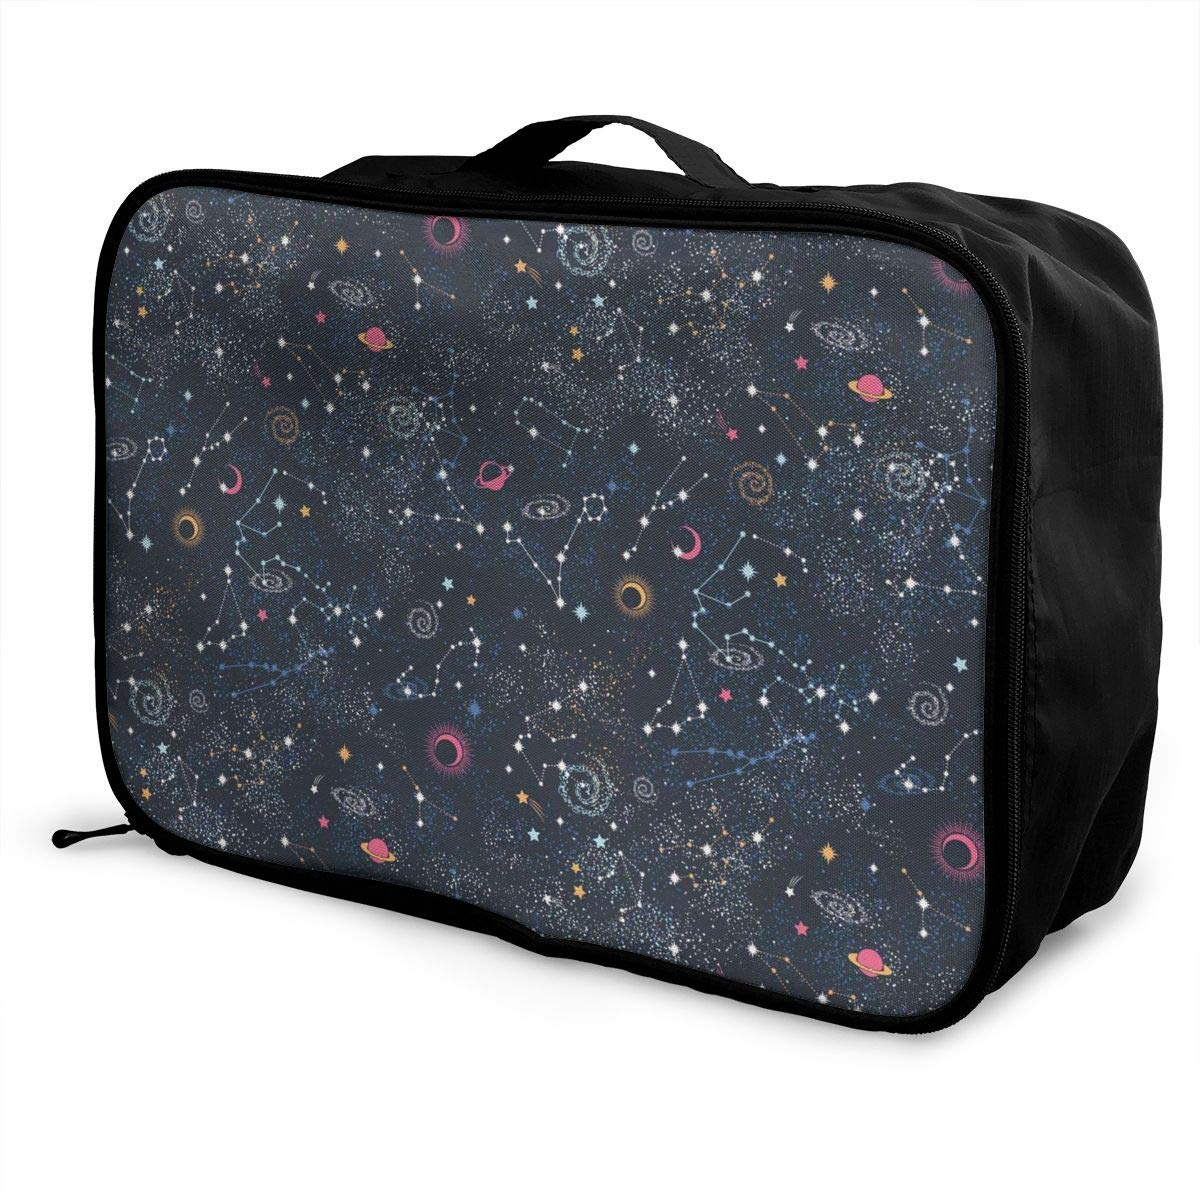 ADGAI Star Clusters Galaxies Canvas Travel Weekender Bag,Fashion Custom Lightweight Large Capacity Portable Luggage Bag,Suitcase Trolley Bag